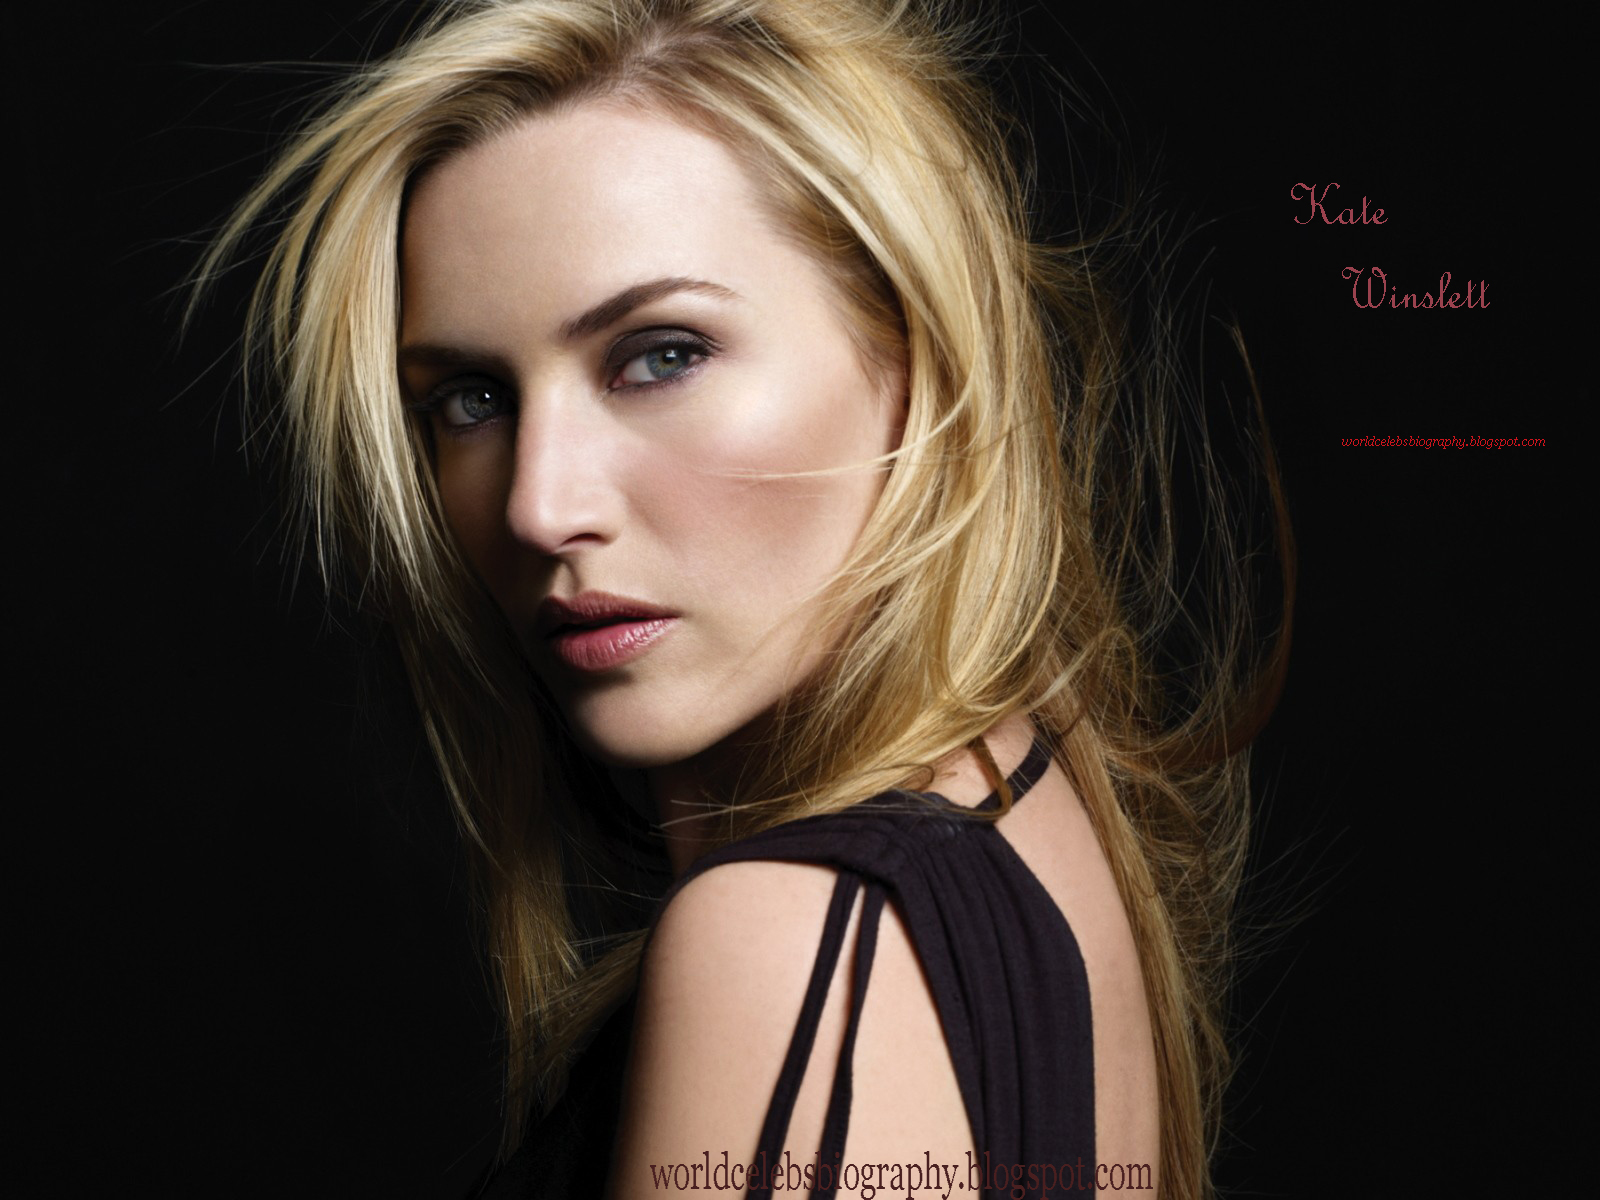 http://3.bp.blogspot.com/-mtmUK7jfsfg/Ts6iJsHcvcI/AAAAAAAABFA/SbXUtznU3HY/s1600/The-best-top-hd-desktop-kate-winslet-wallpaper-kate-winslet-wallpapers-10.jpg